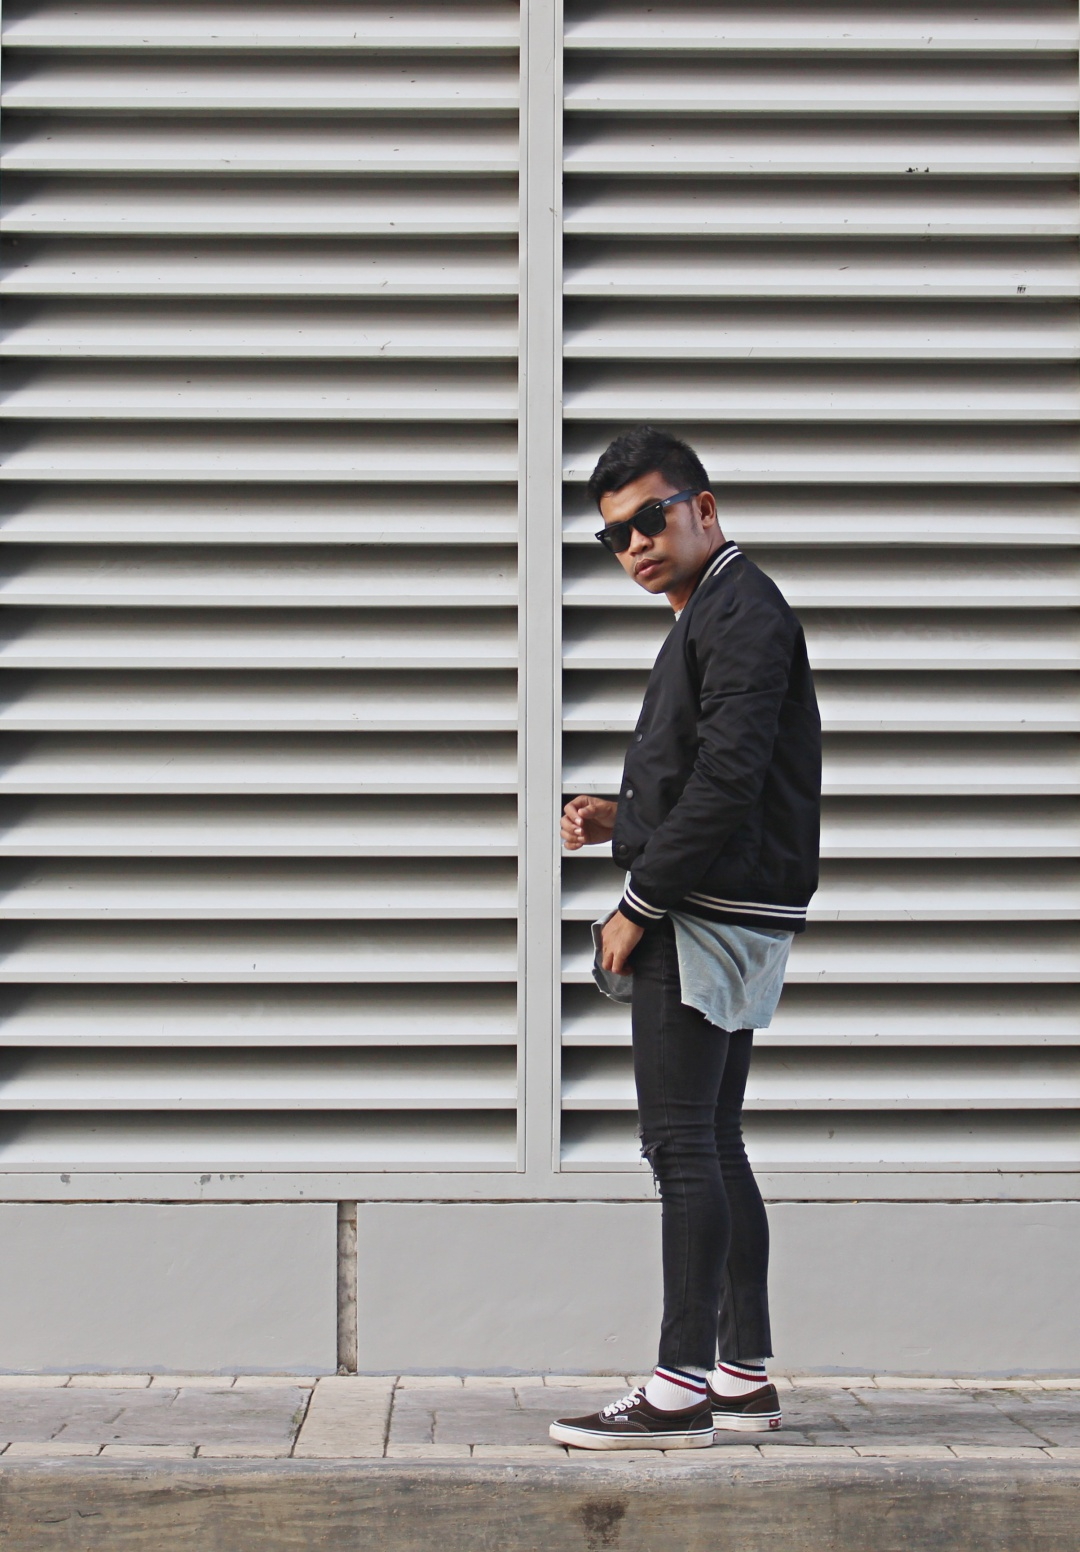 cebu-men-fashion-best-blogger-almostablogger.jpg